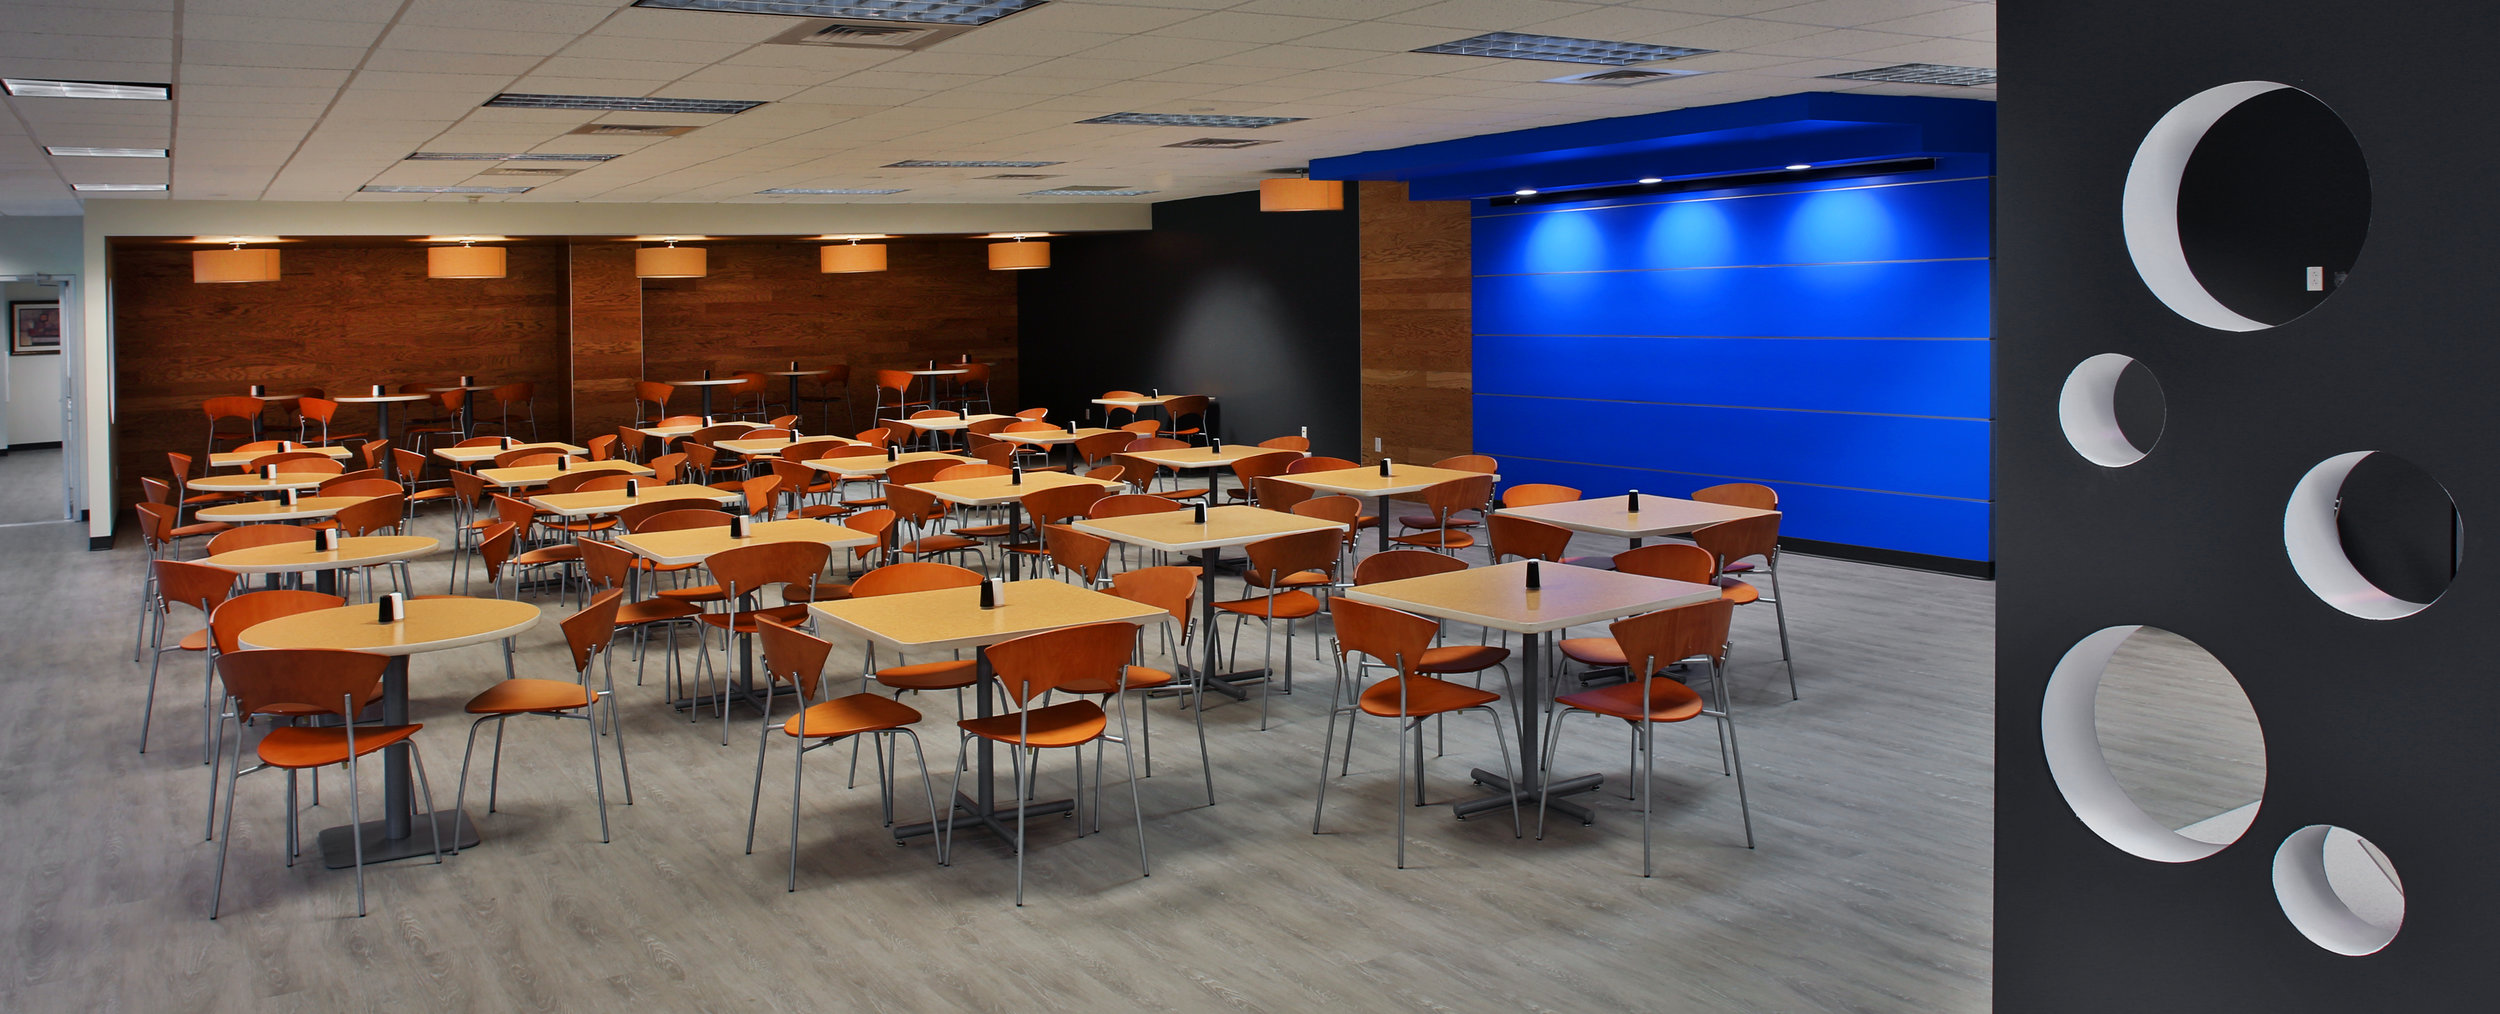 PHH Cafe Seating Area 2.jpg